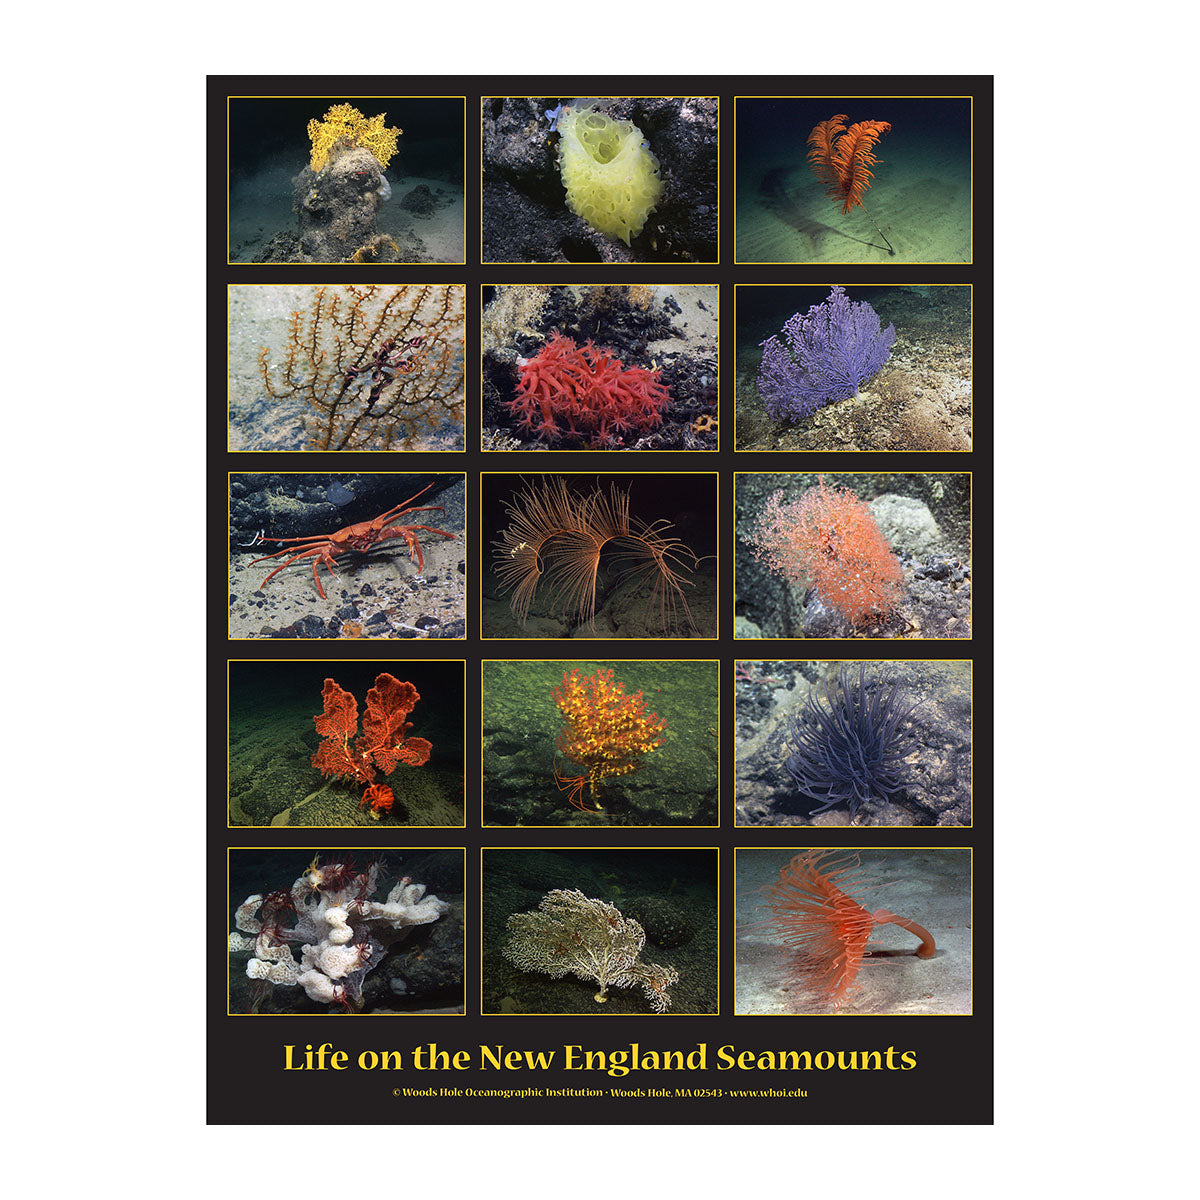 Life on the Seamounts Poster